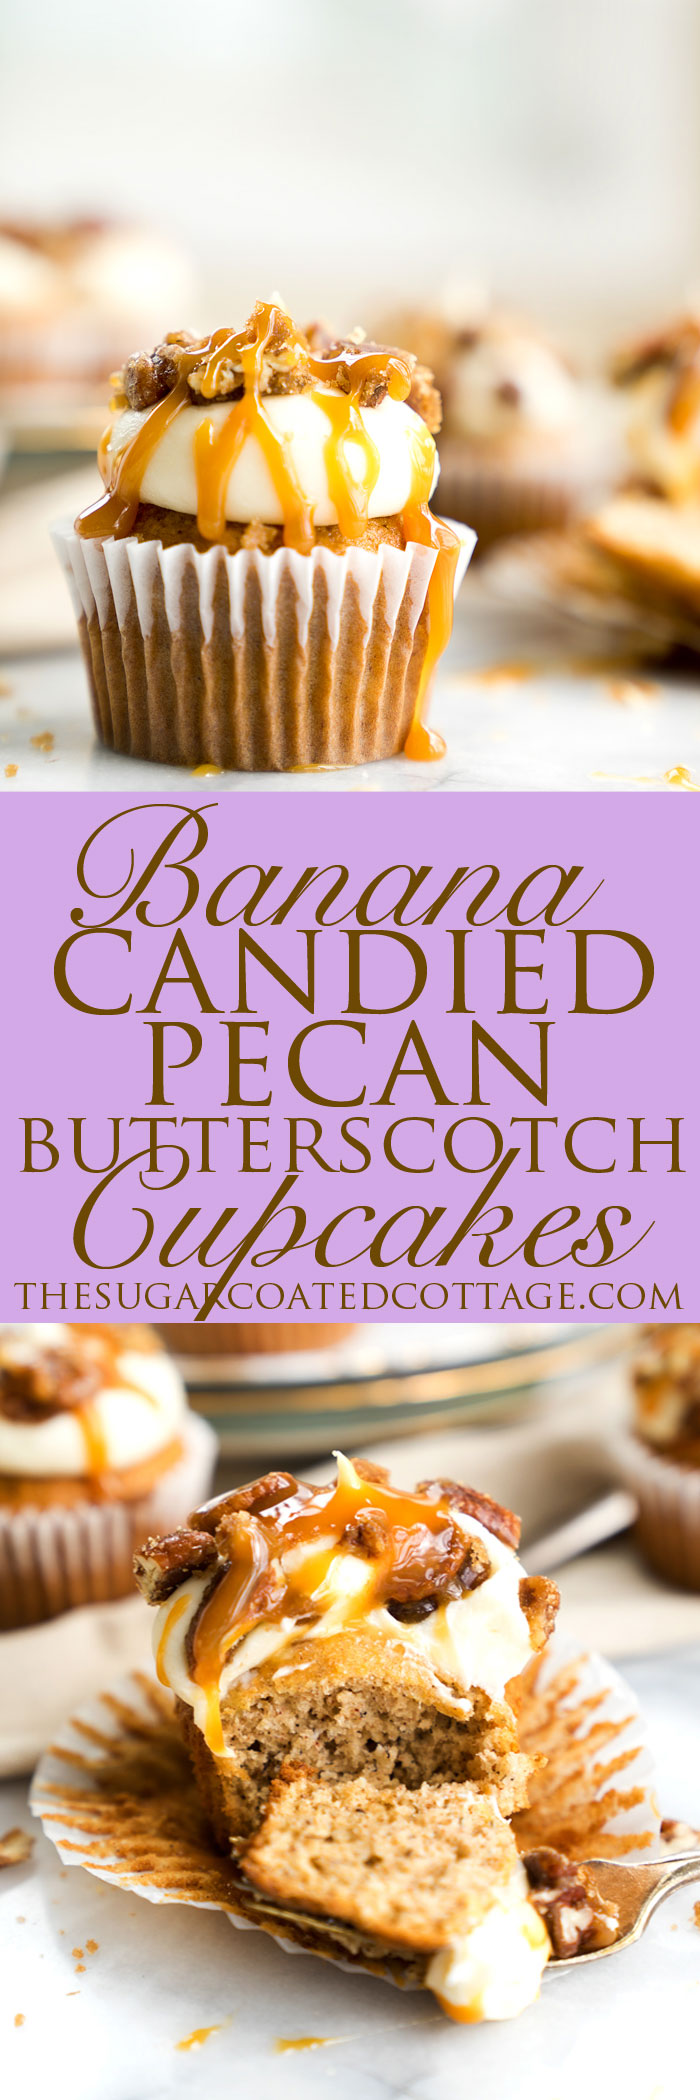 Candied Pecan Banana Cupcake Recipe. Easy stove top candied pecans crumbled on top of cream cheese frosting, drizzled with butterscotch on top of a sweet banana cupcake! | thesugarcoatedcottage.com, candied pecans, cream cheese frosting, butterscotch, banana, recipe, cupcake. #cupcake #recipe